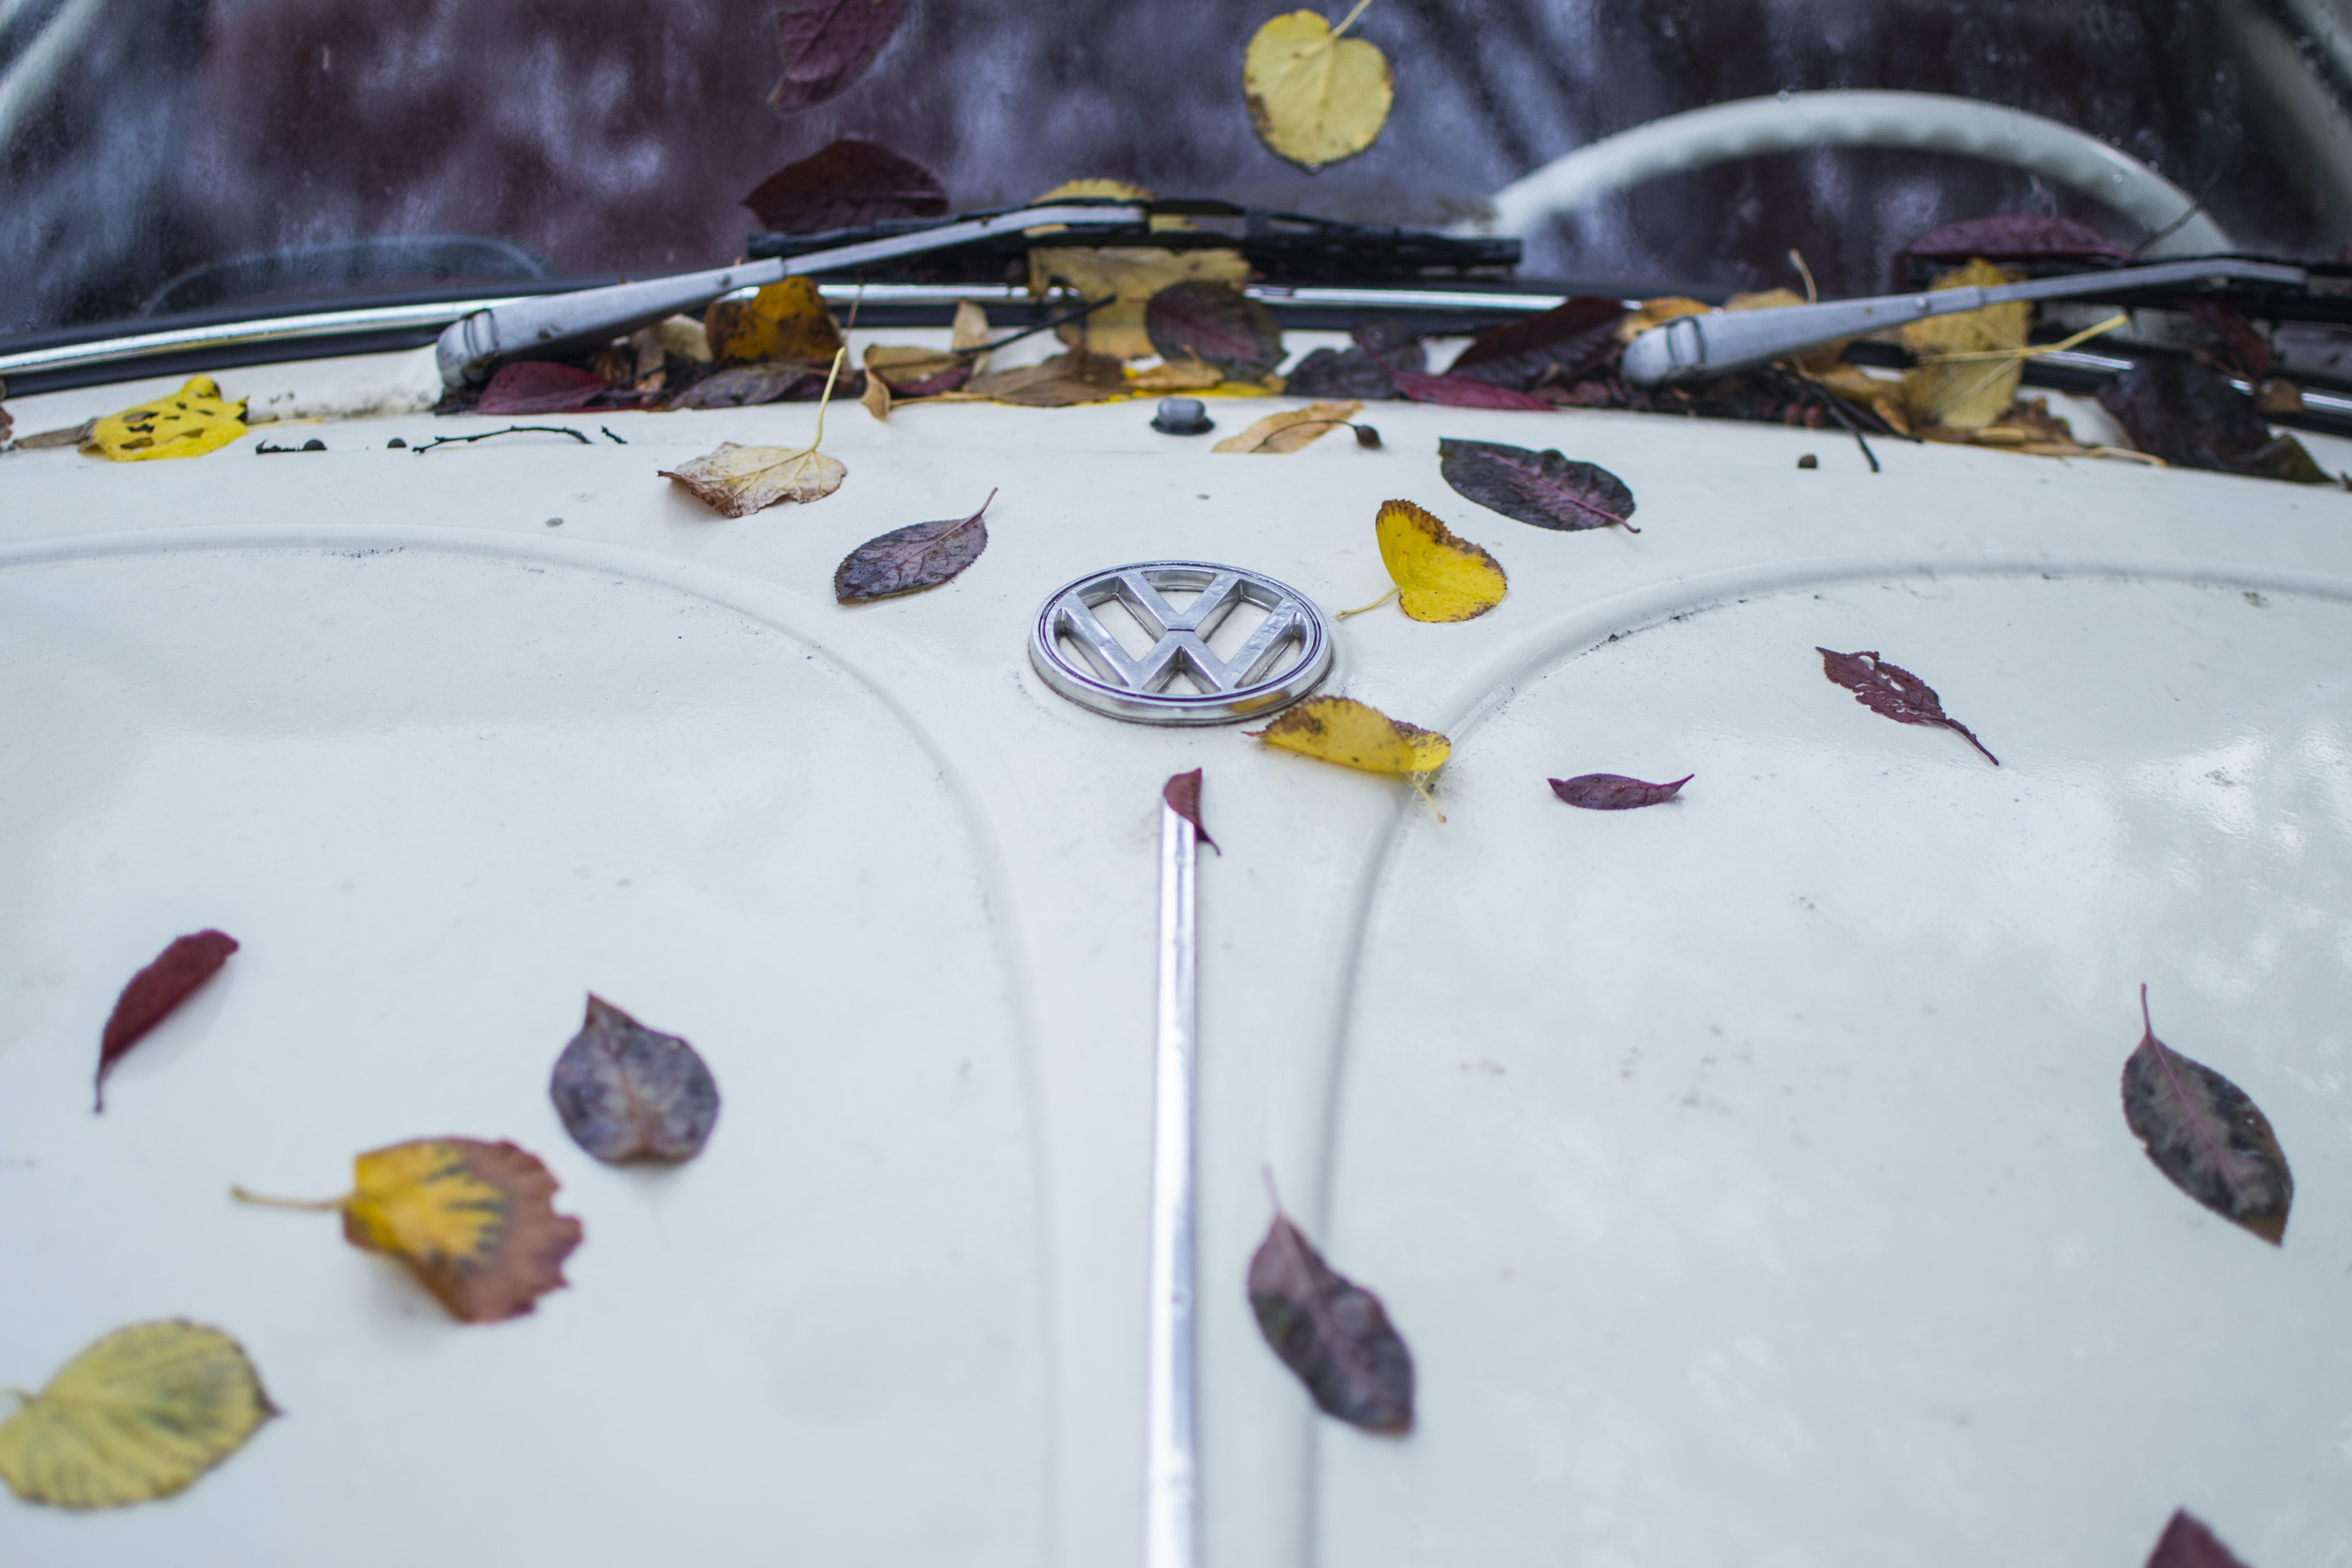 close up photo of white Volkswagen car